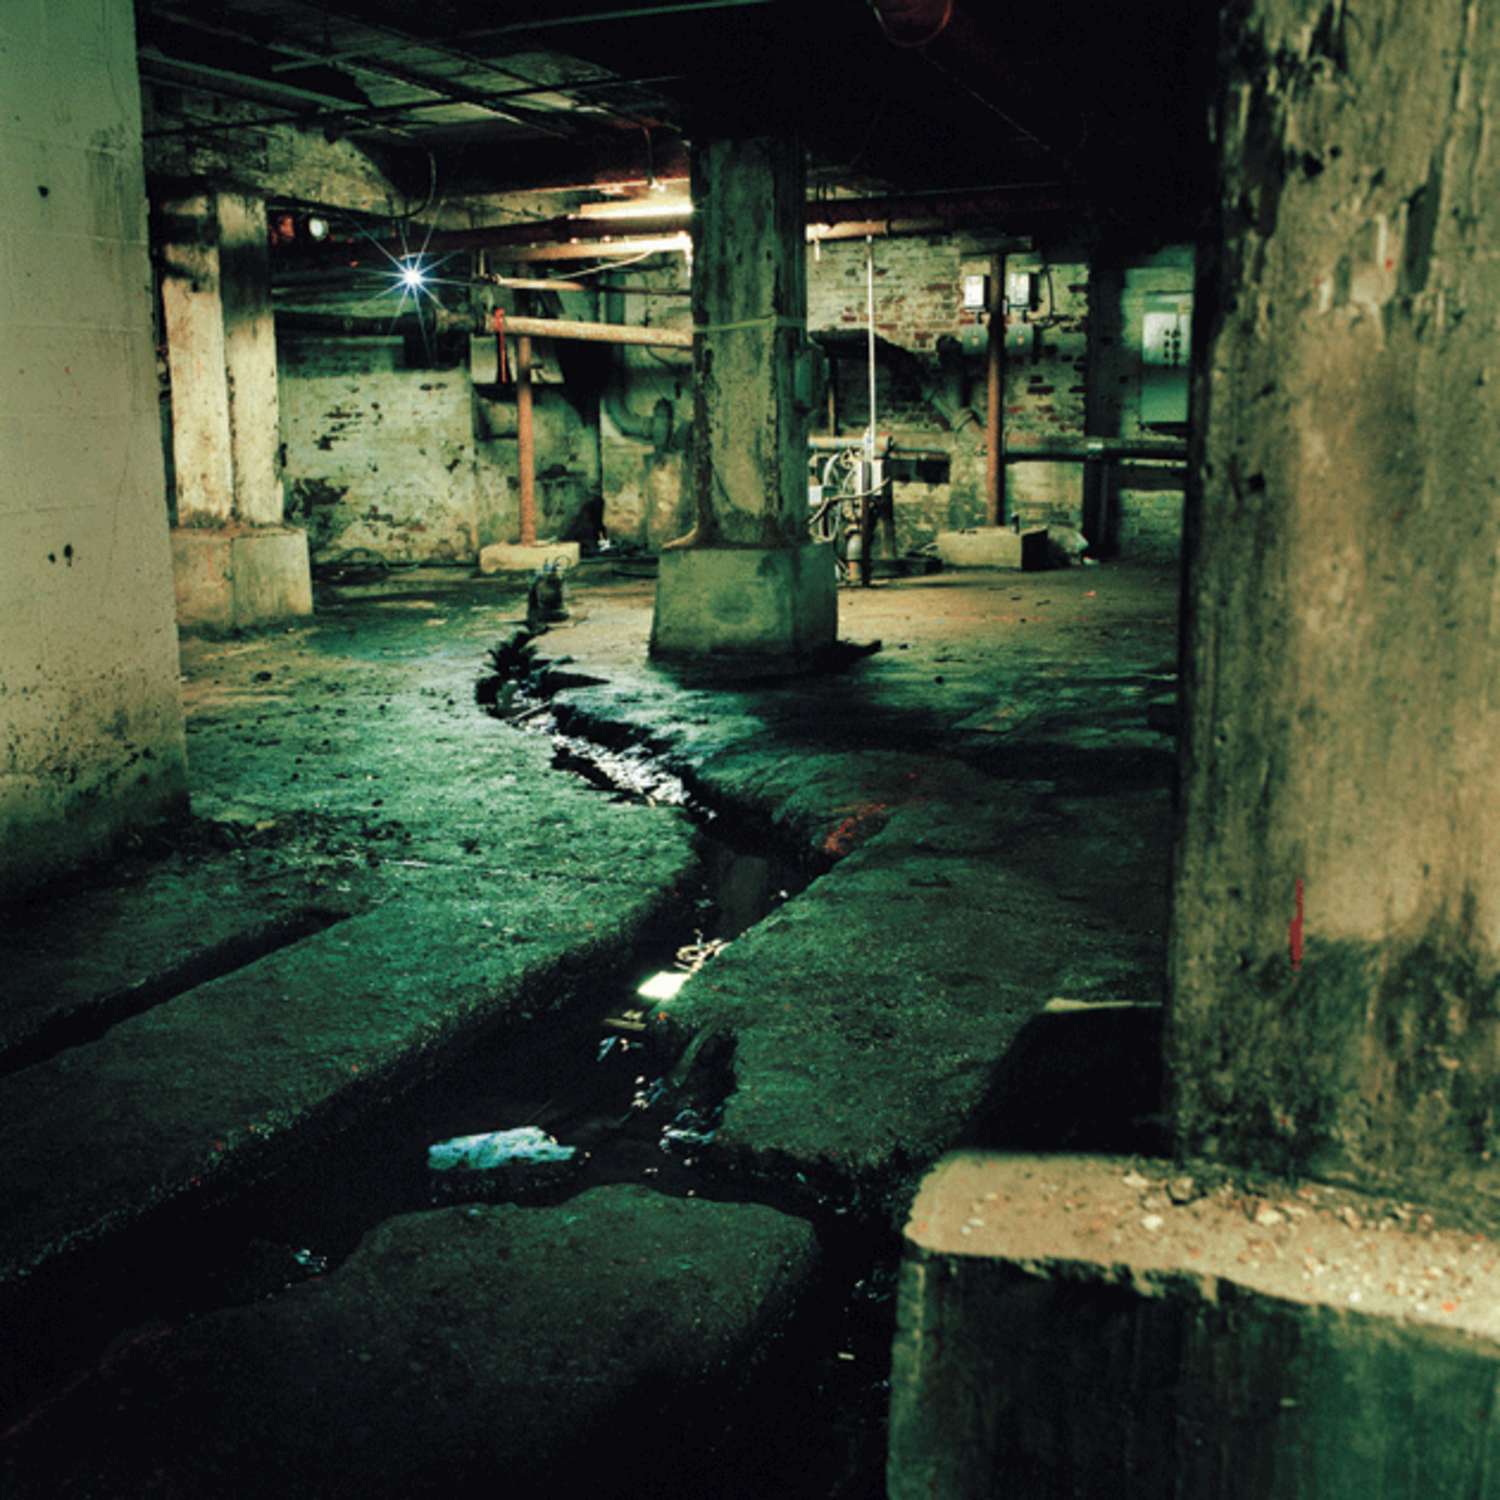 Photograph of Brouwer's Brook by Miska Draskoczy, whose monograph Gowanus Wild will be published this spring